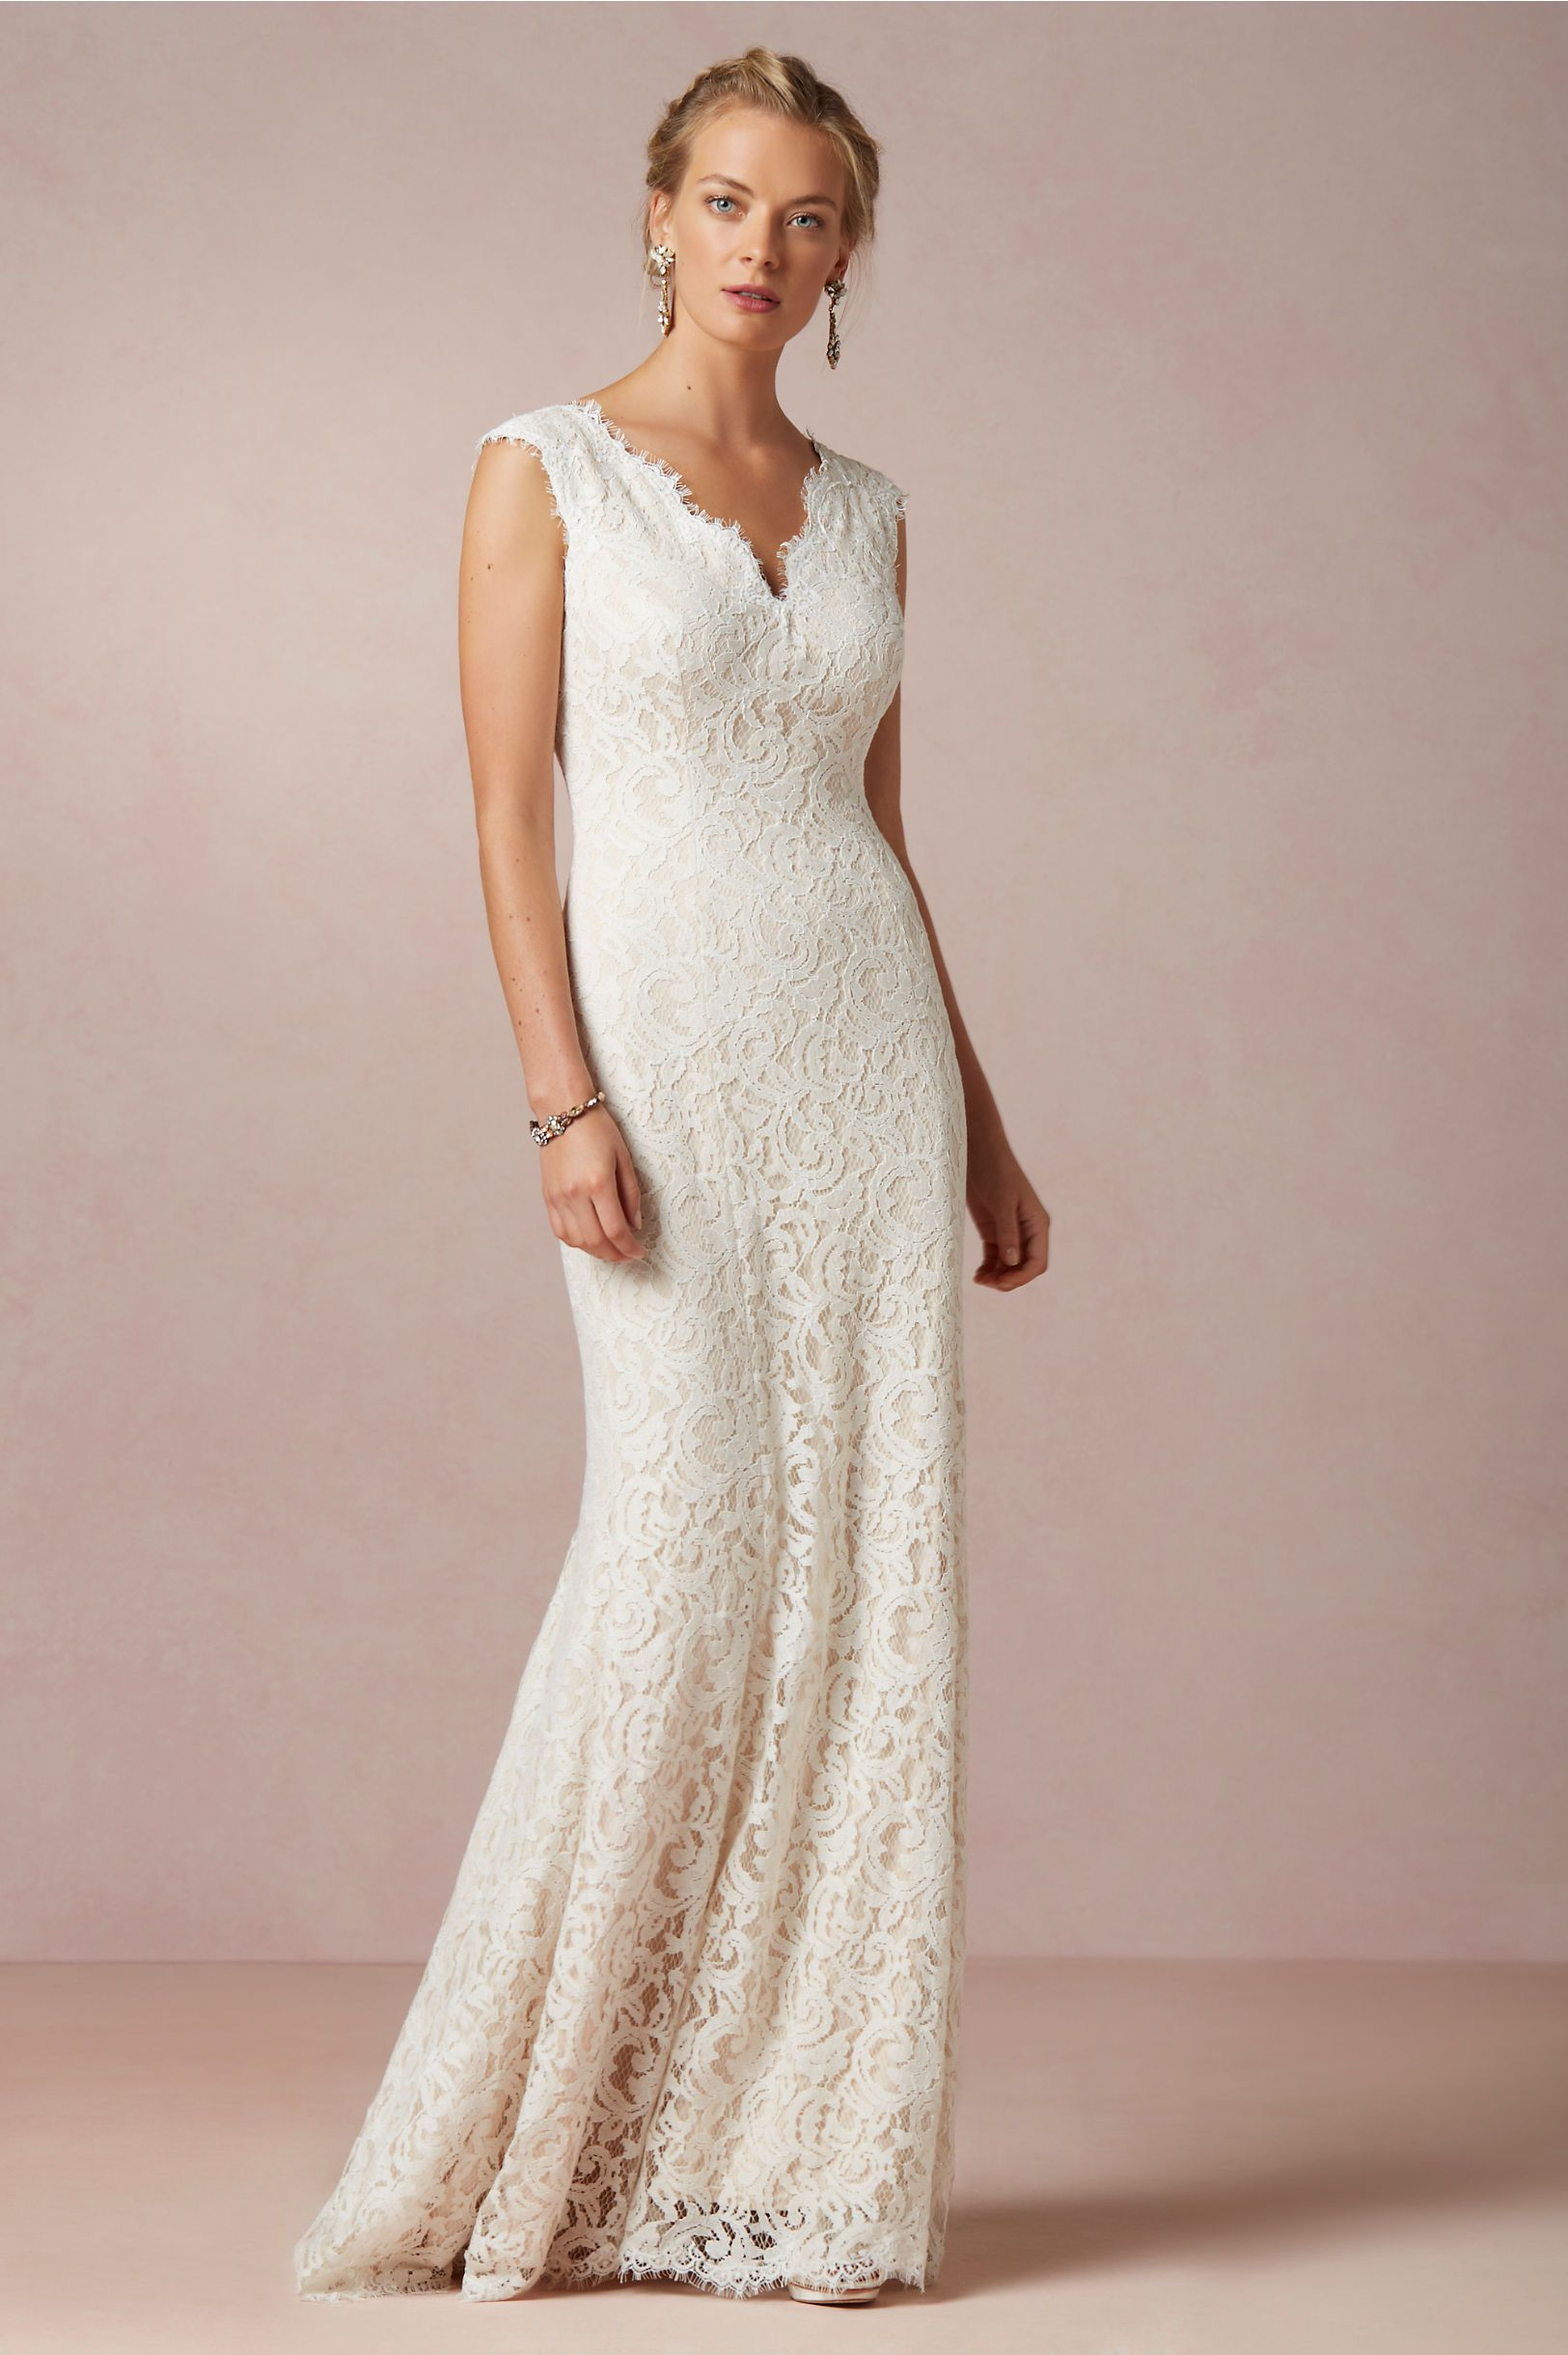 Wedding Anthropologie Wedding Dress 17 best images about wedding dresses on pinterest lace pale pink bridesmaids and for sale